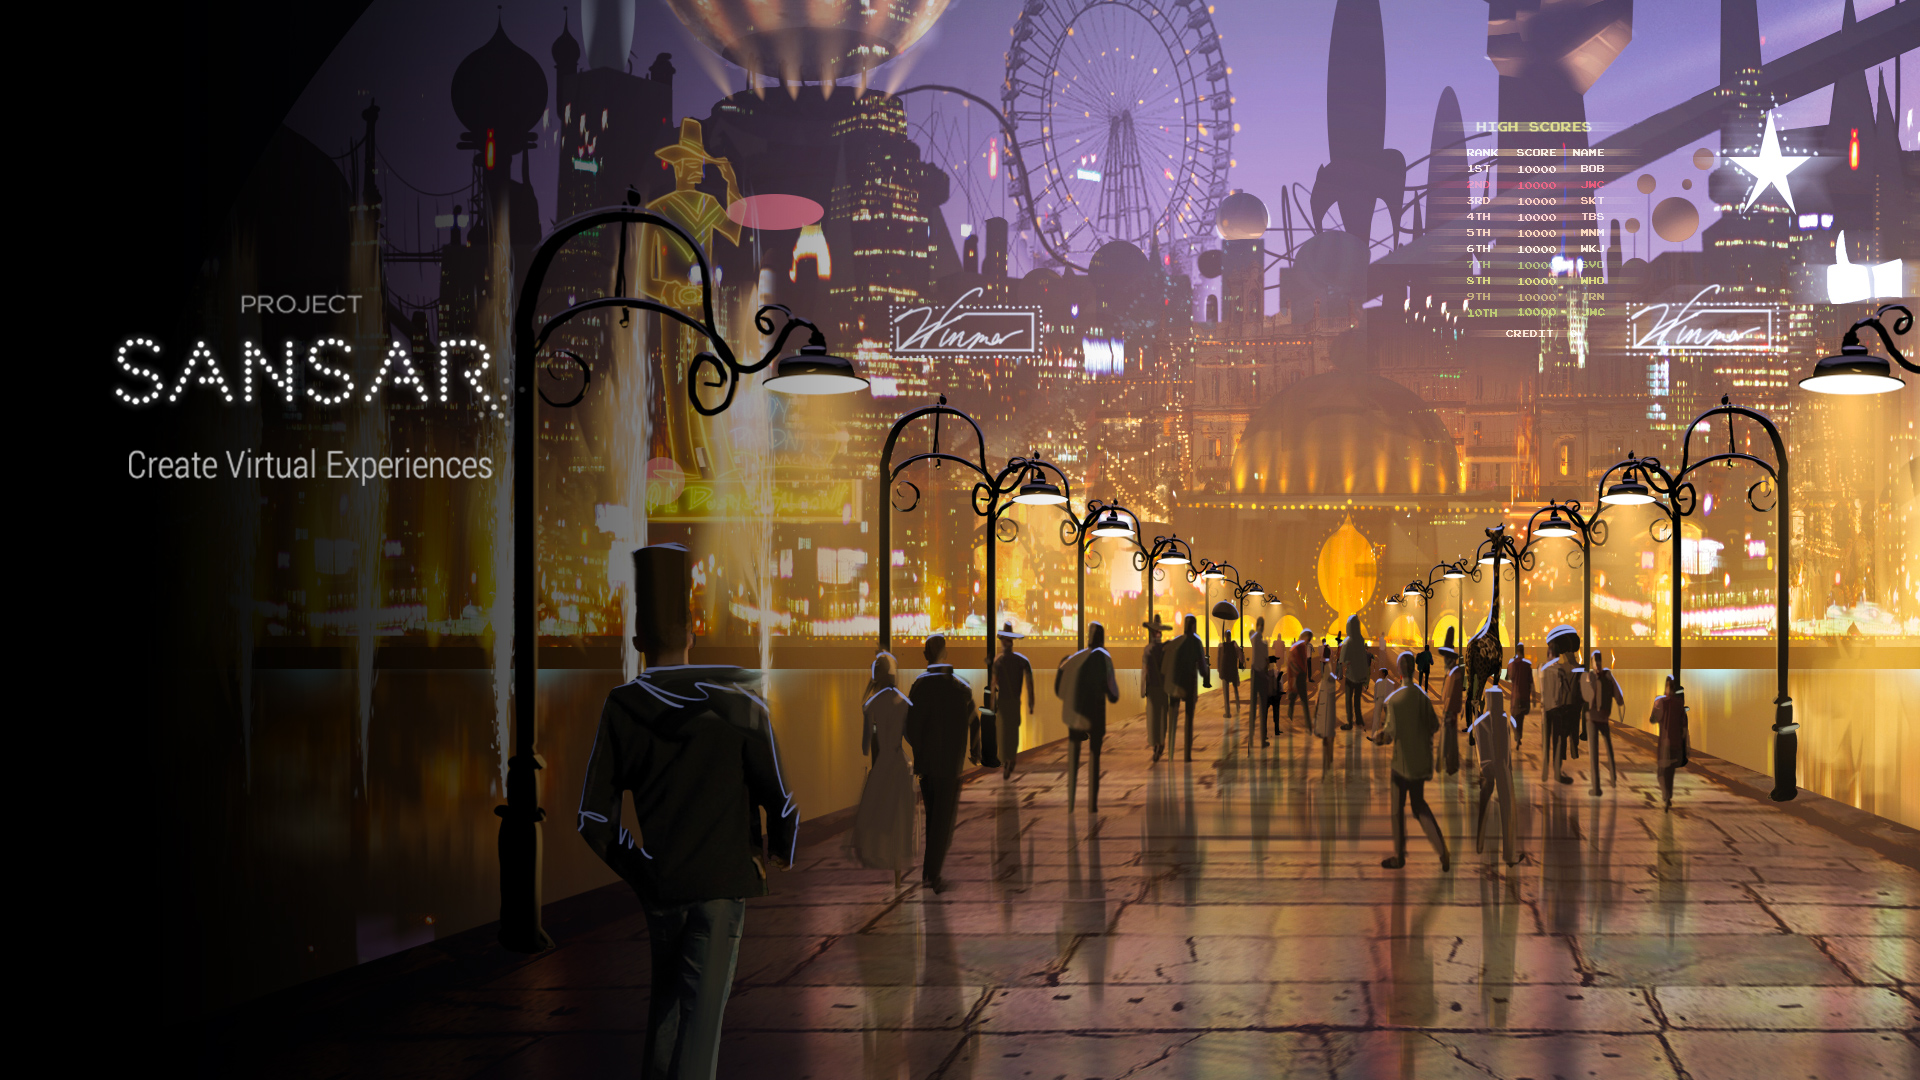 projectsansar